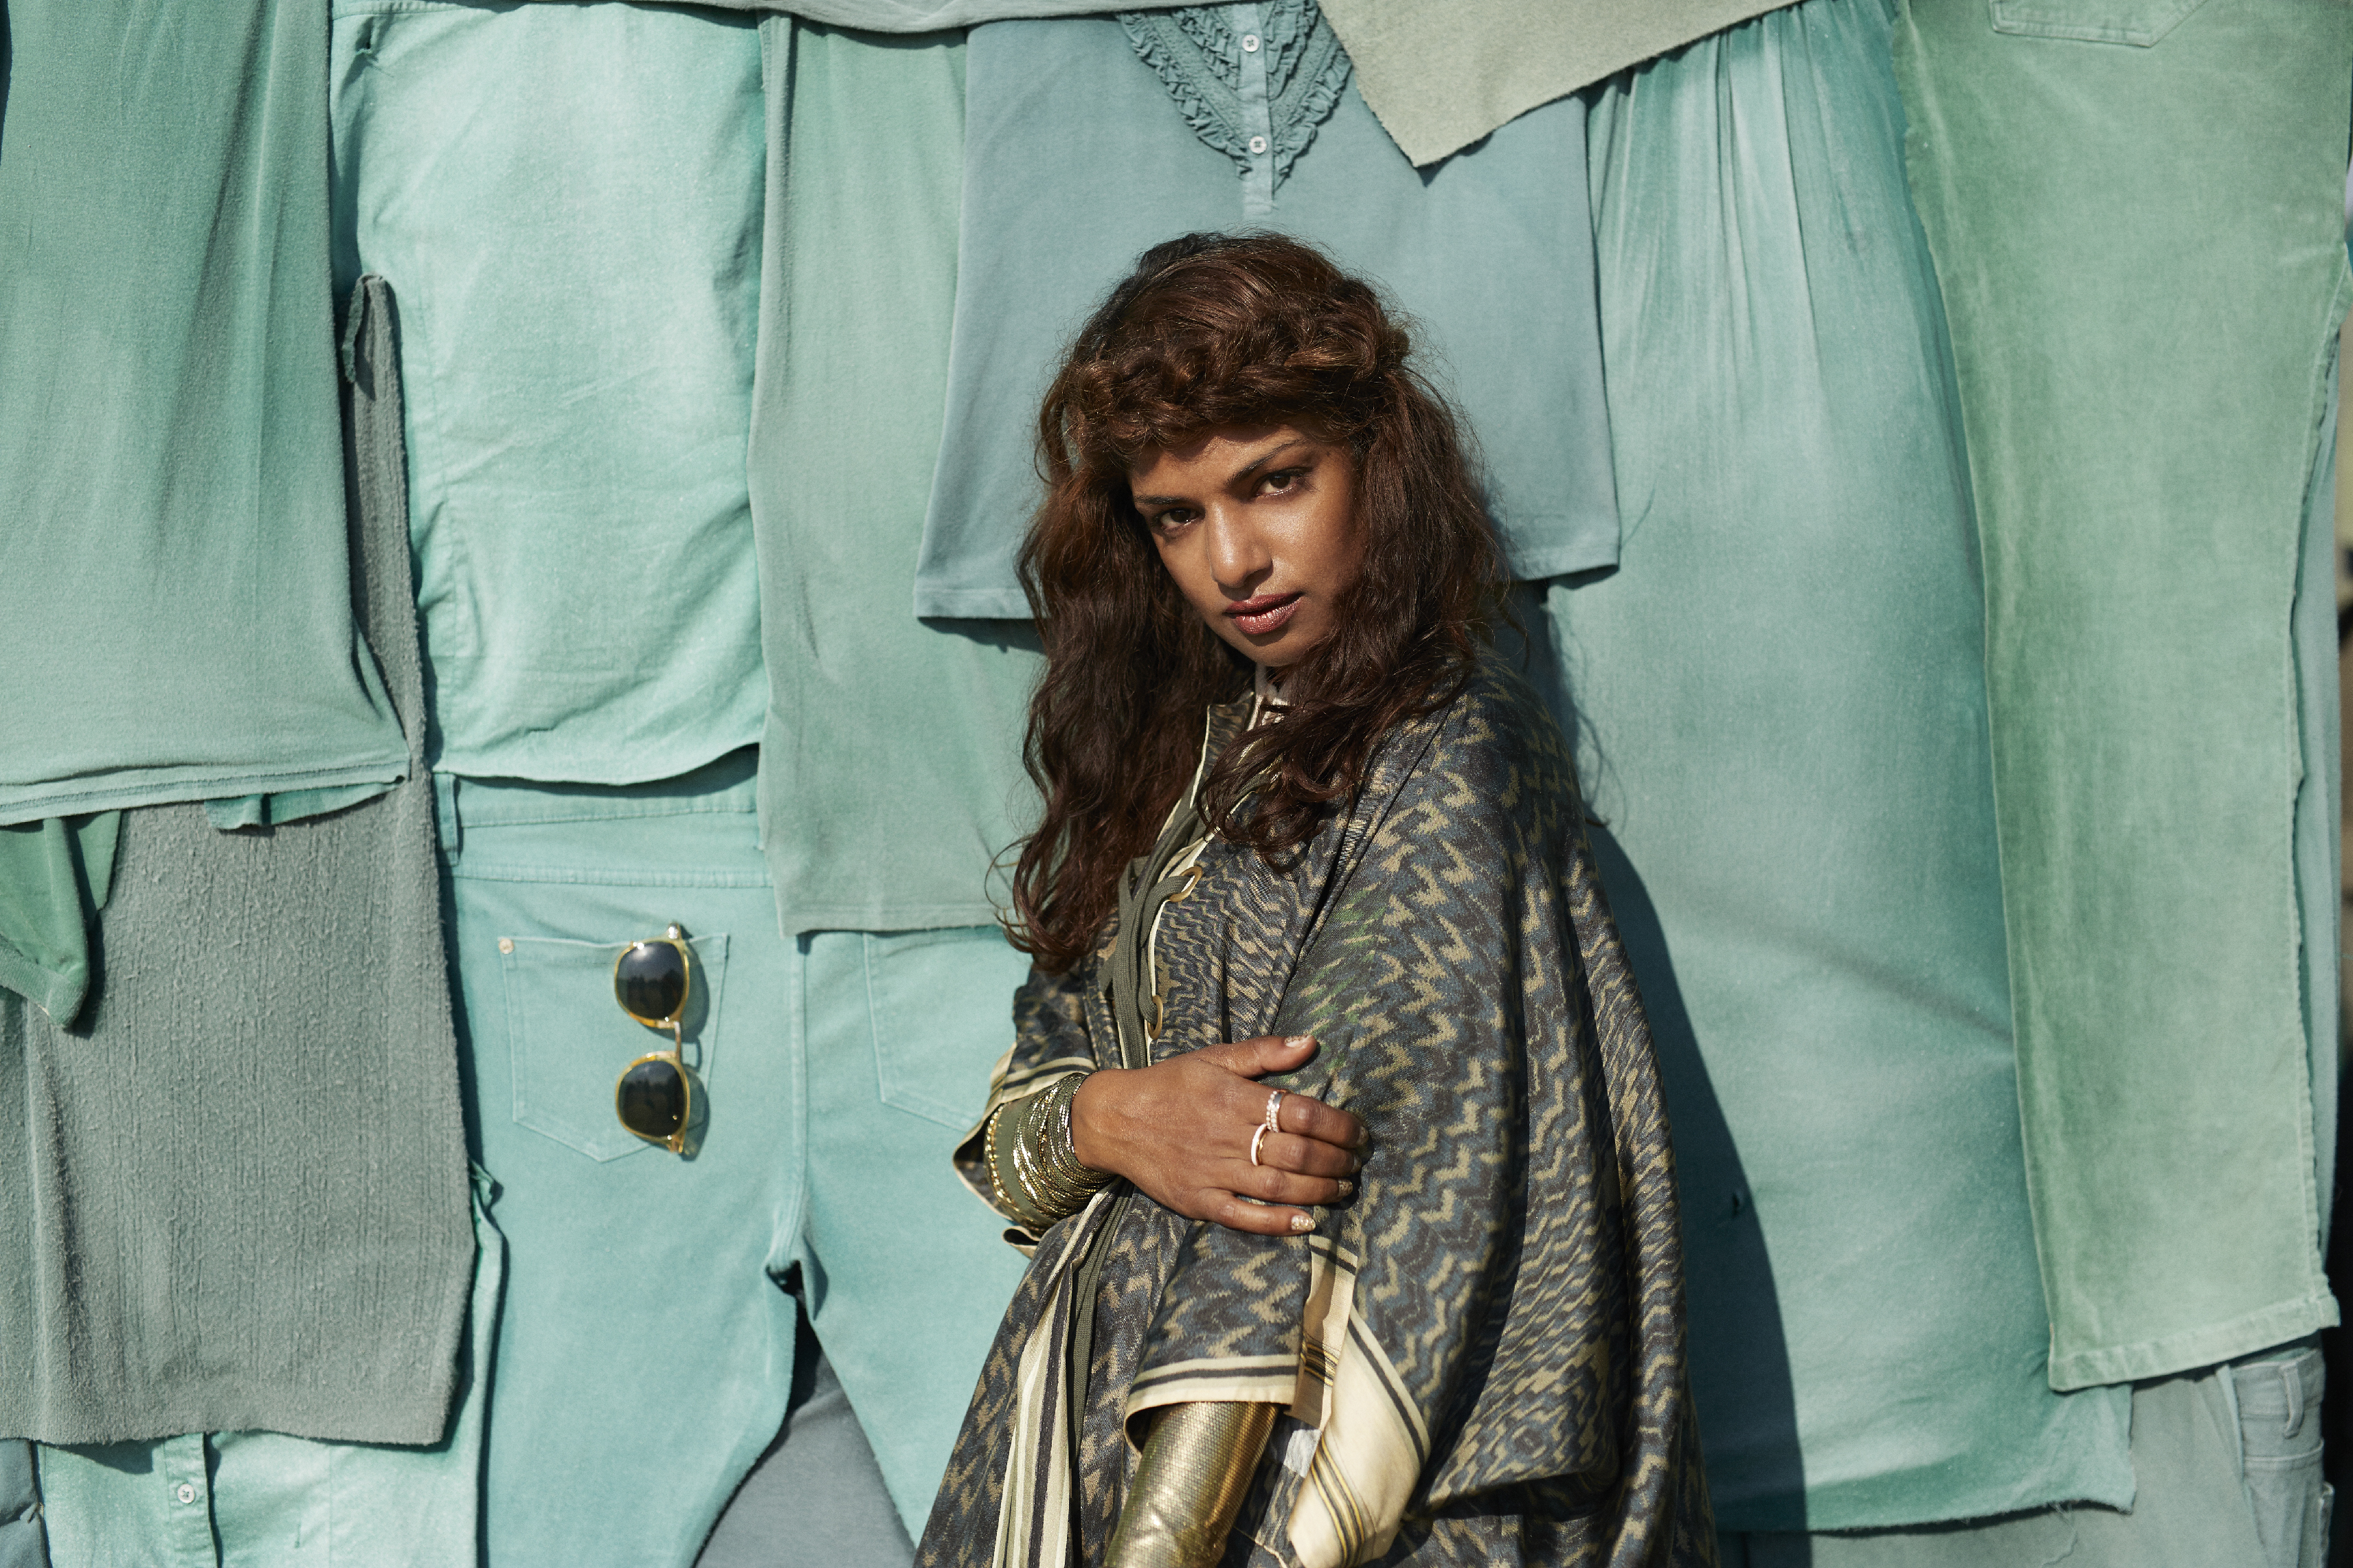 H&M and Artist M.I.A. Join Together to Launch World Recycle Week ...